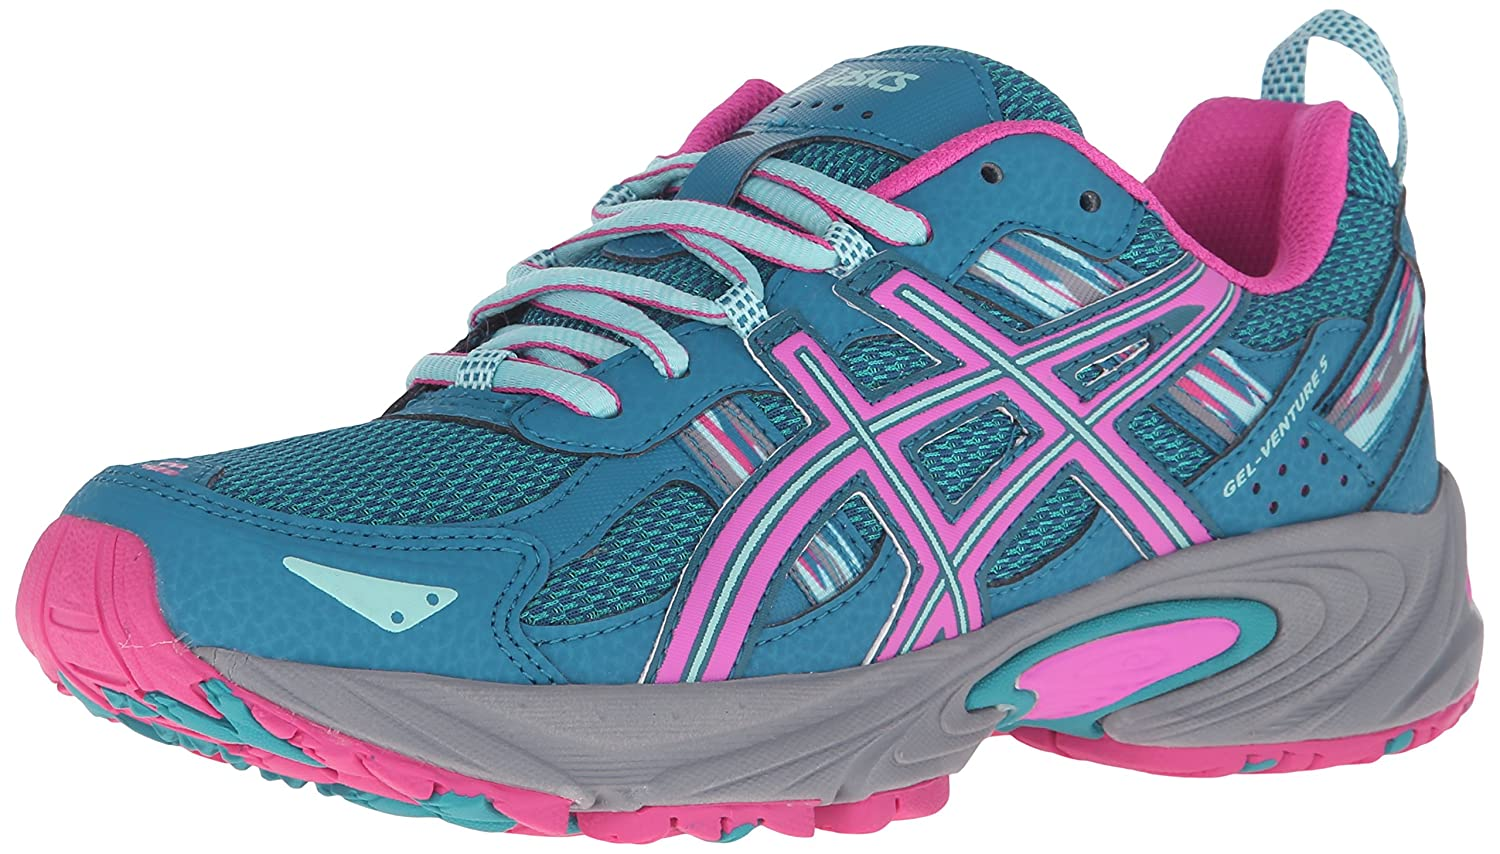 Ocean Depth Pink Glow Aruba bluee ASICS Women's Gel-Venture 5 Running shoes